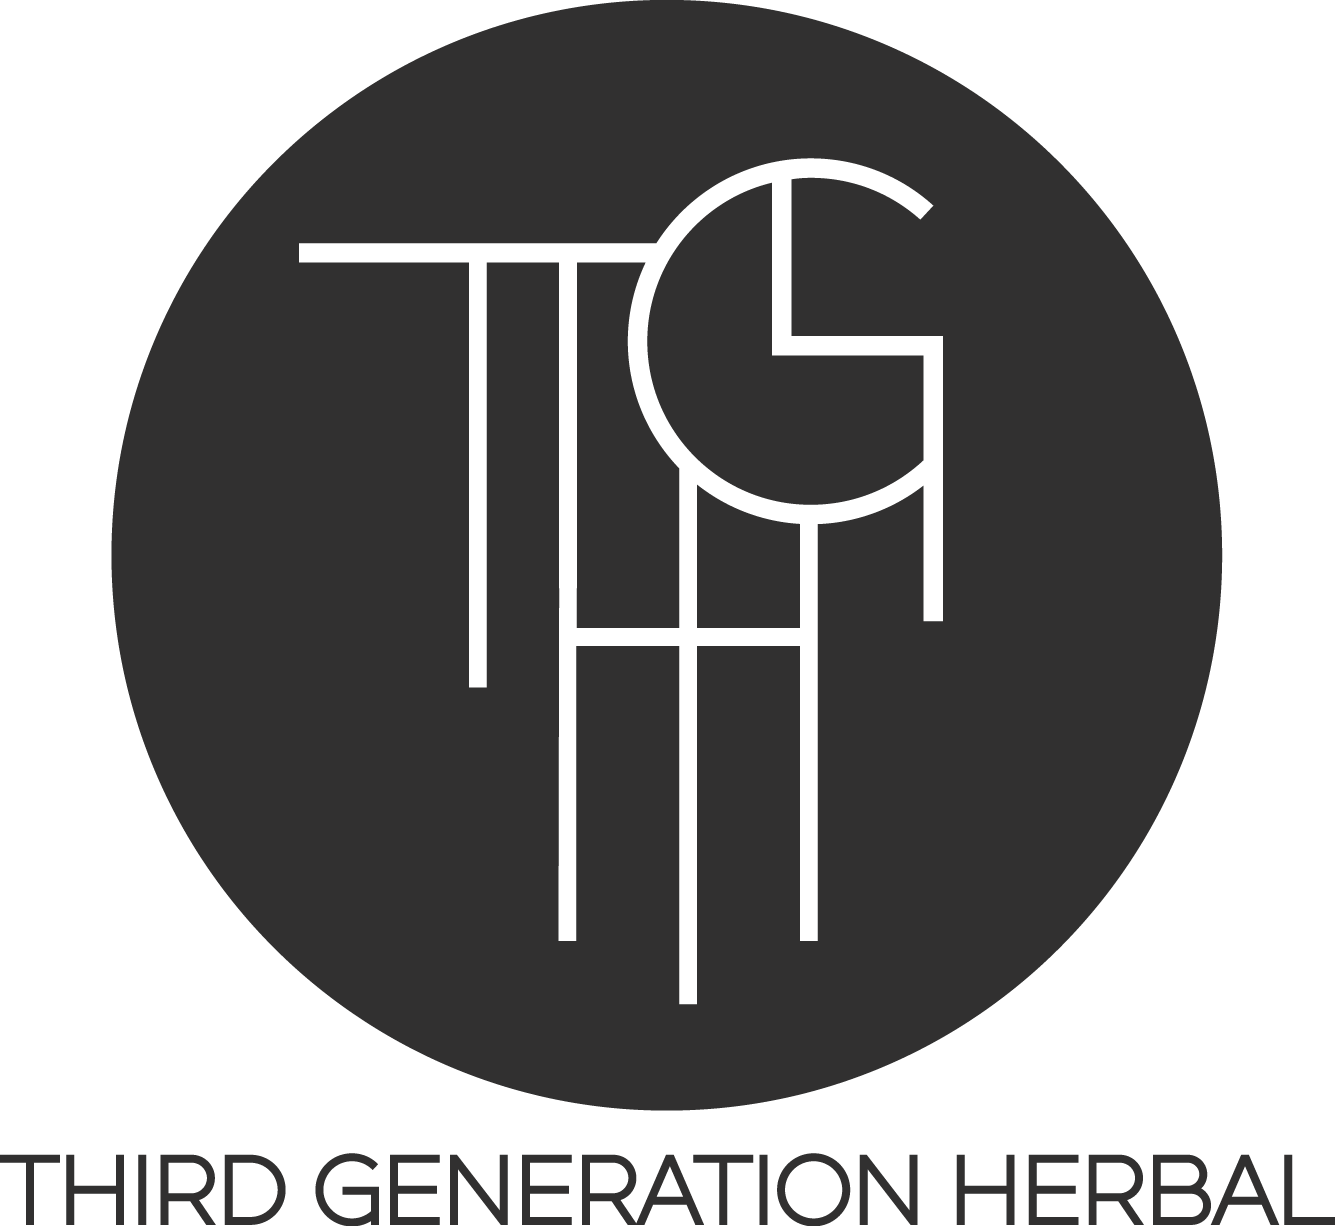 Third Generation Herbal, LLC